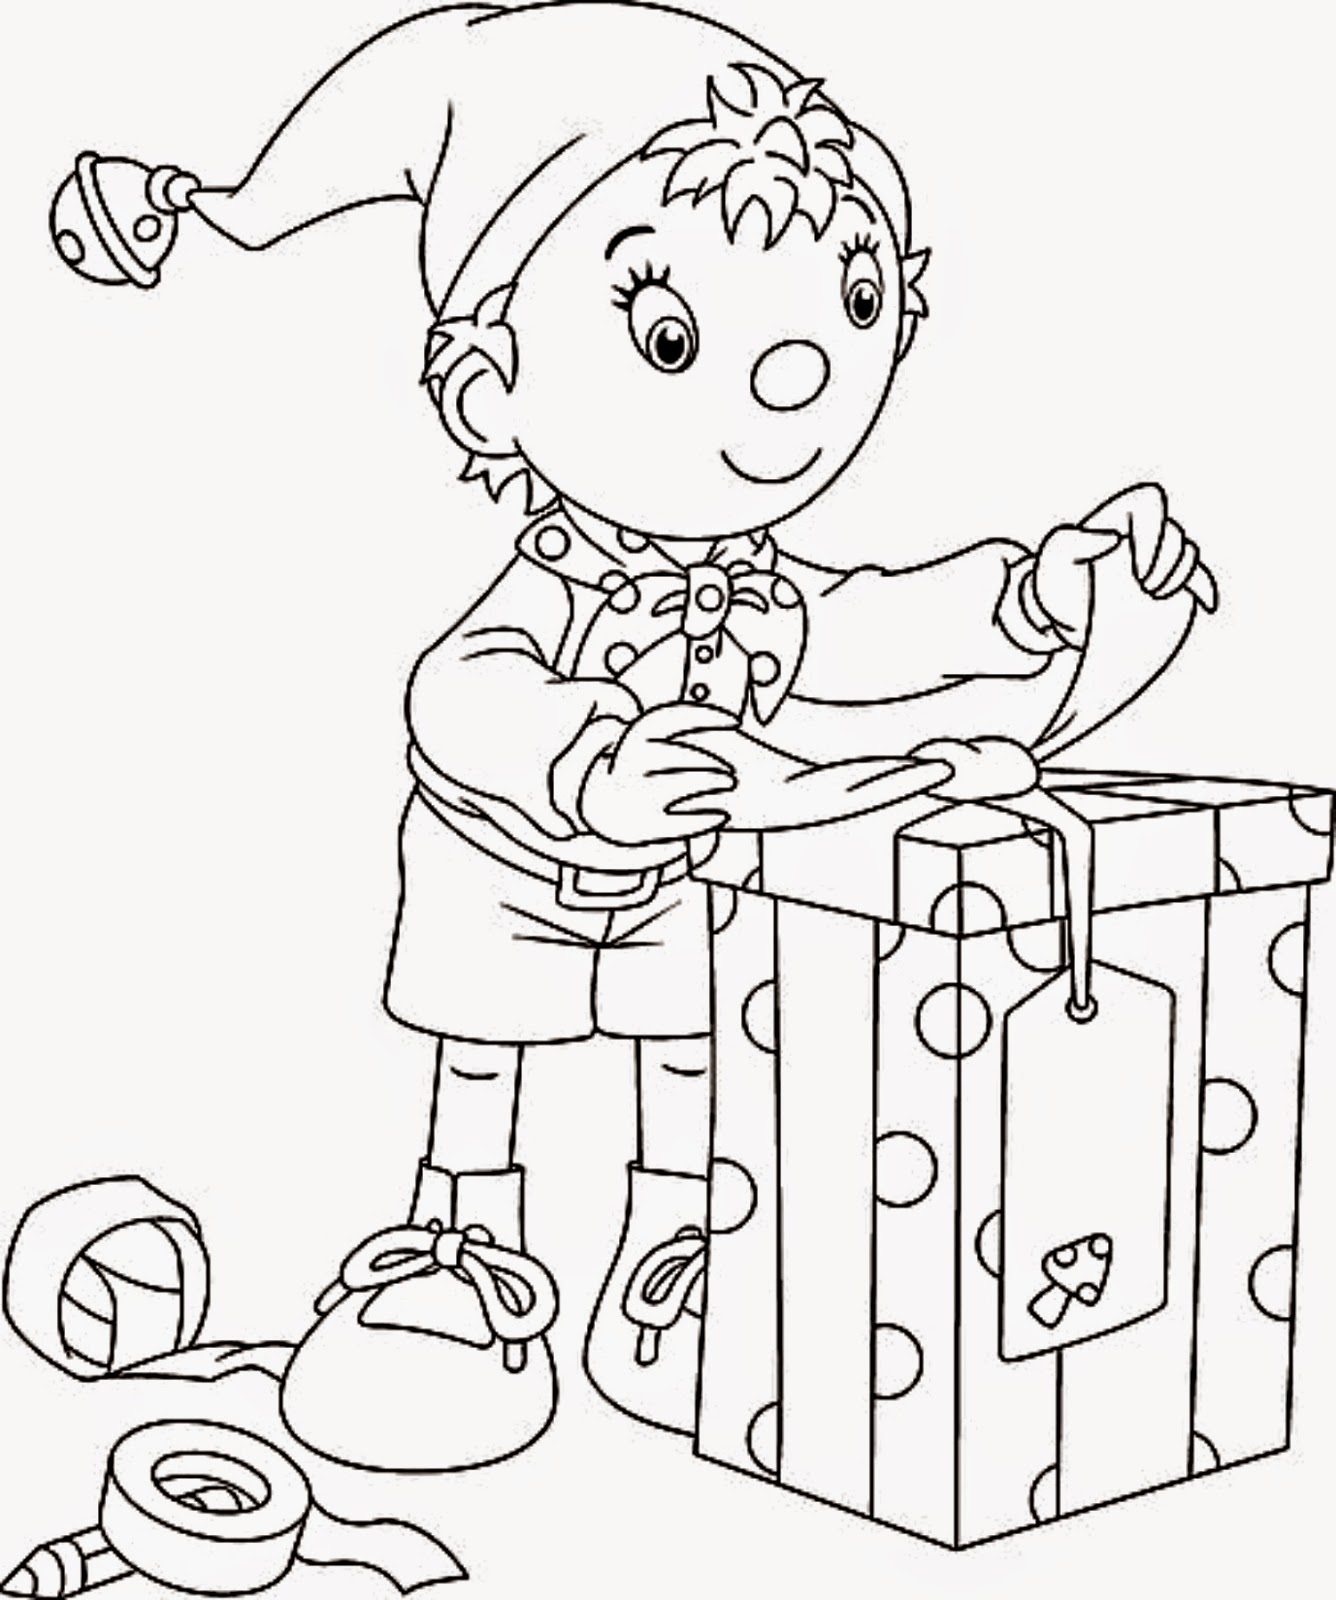 the holiday site christmas elf coloring pages